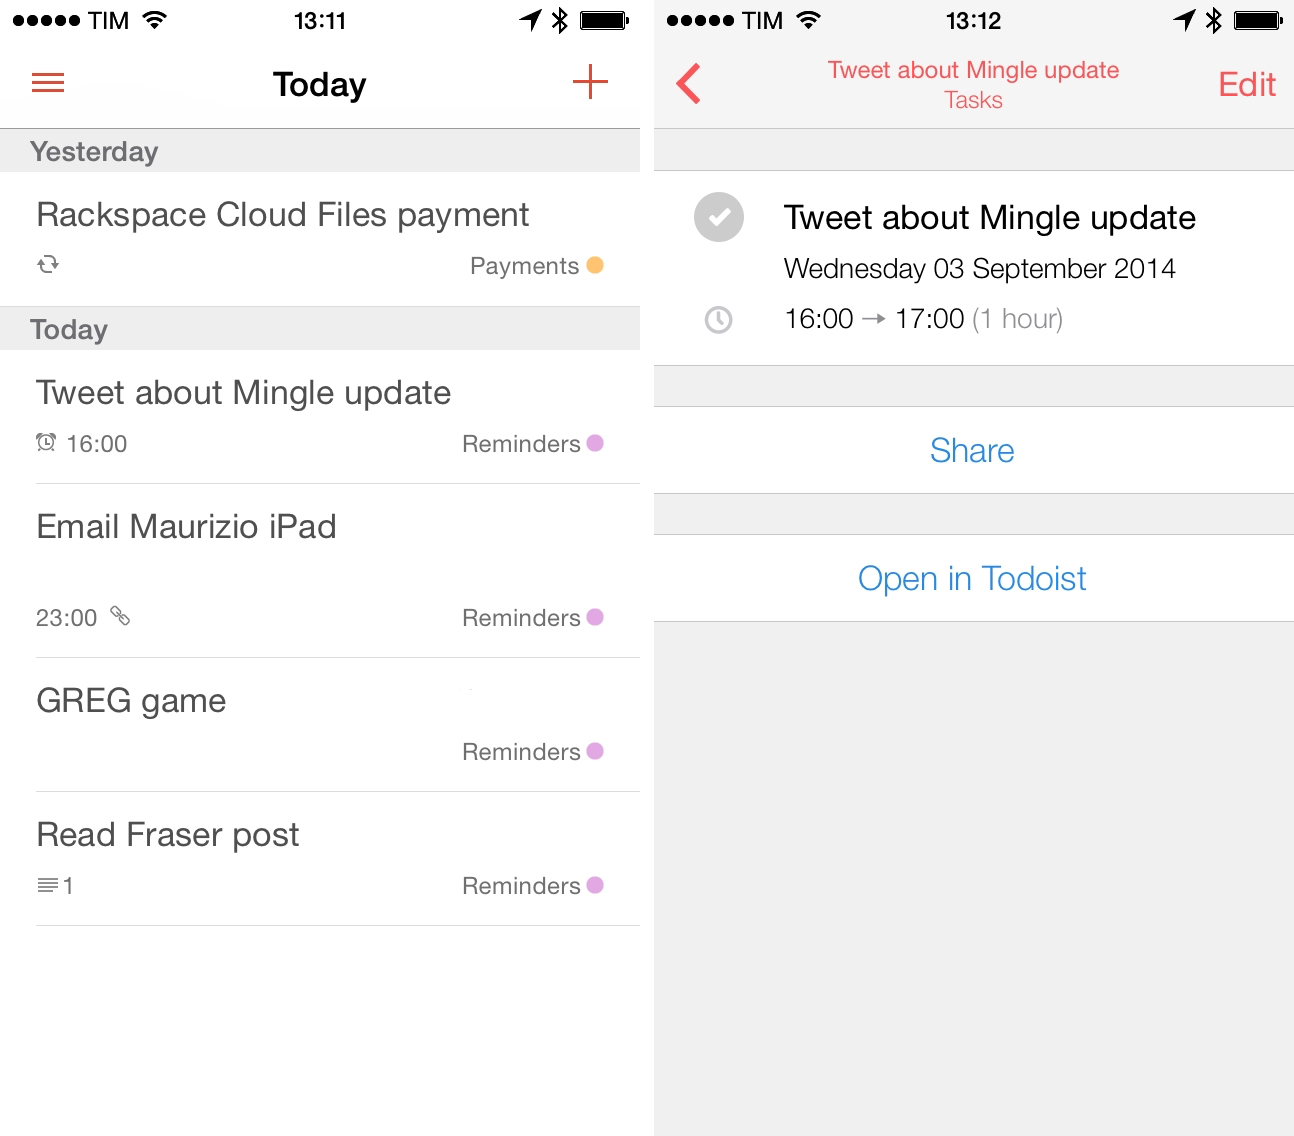 Todoist for iPhone (left) and Todoist tasks in Sunrise (right).